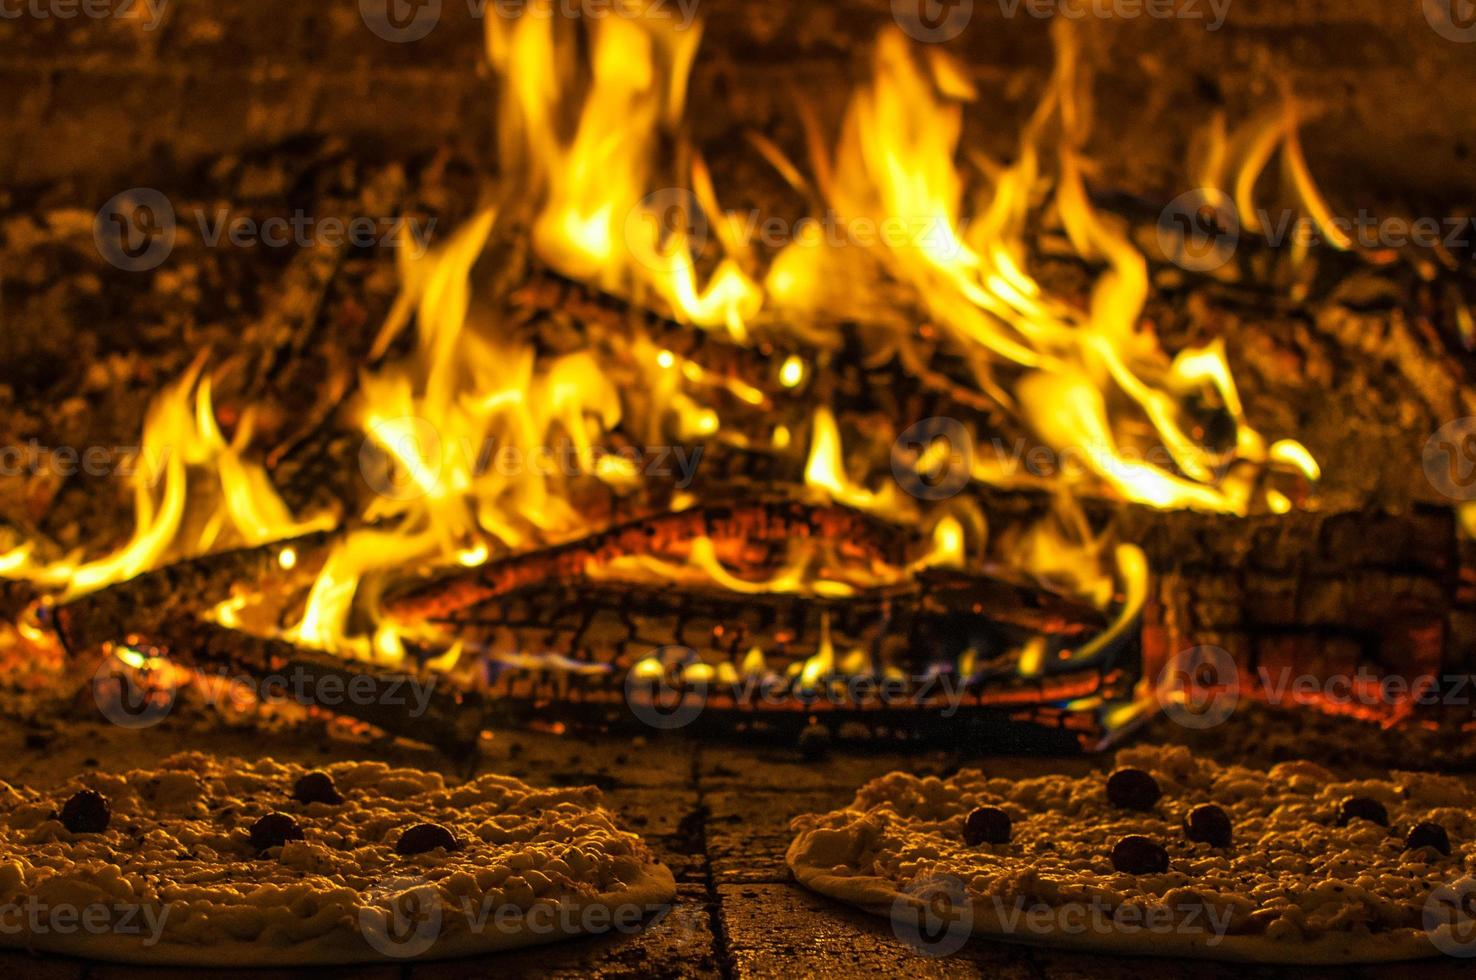 Wood oven pizzas photo